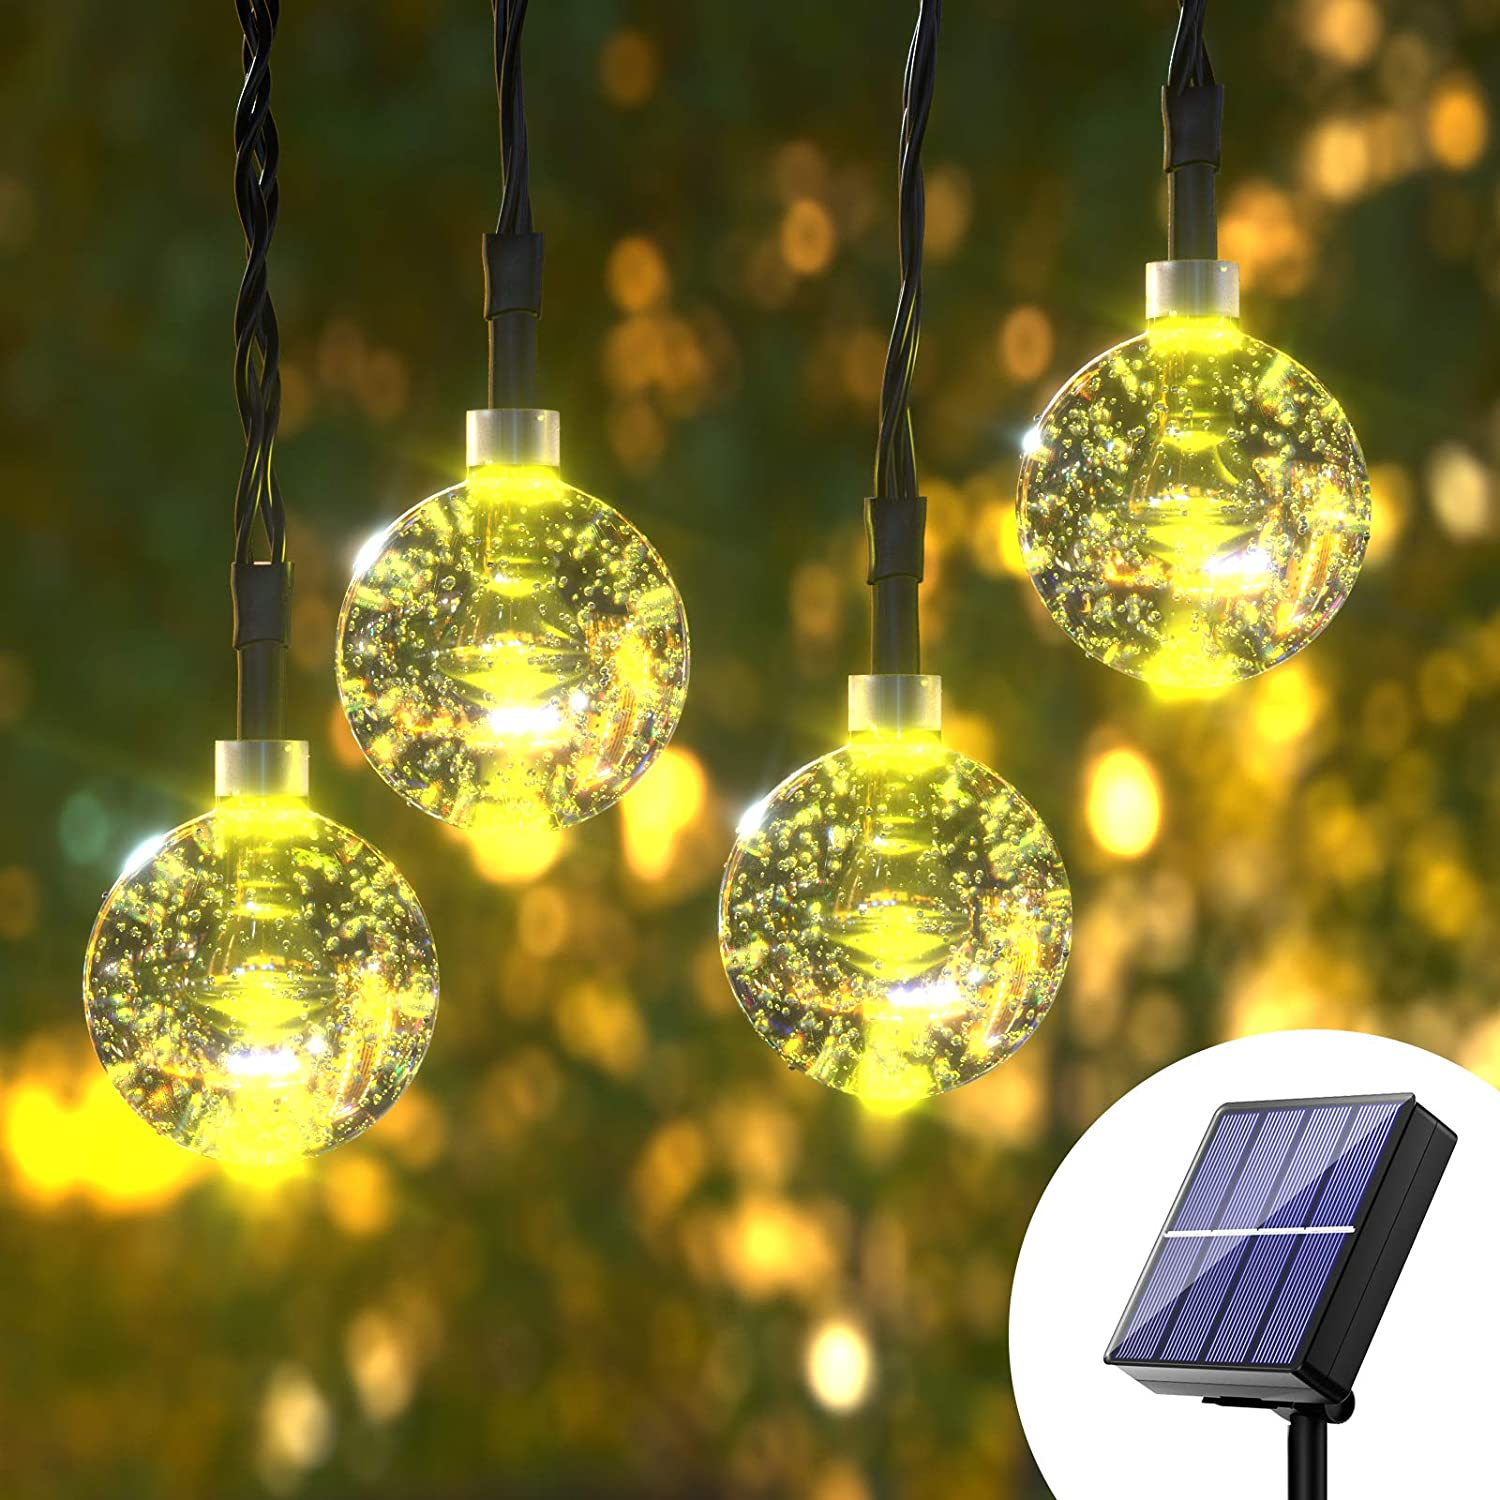 Globe Outdoor String Lights Solar - 36ft 8 Mode 60 LED Crystal Solar Power String Ball Lights Waterproof Weatherproof Mini Light String for Gazebo, Patio, Garden, Christmas Decorations, Warm White